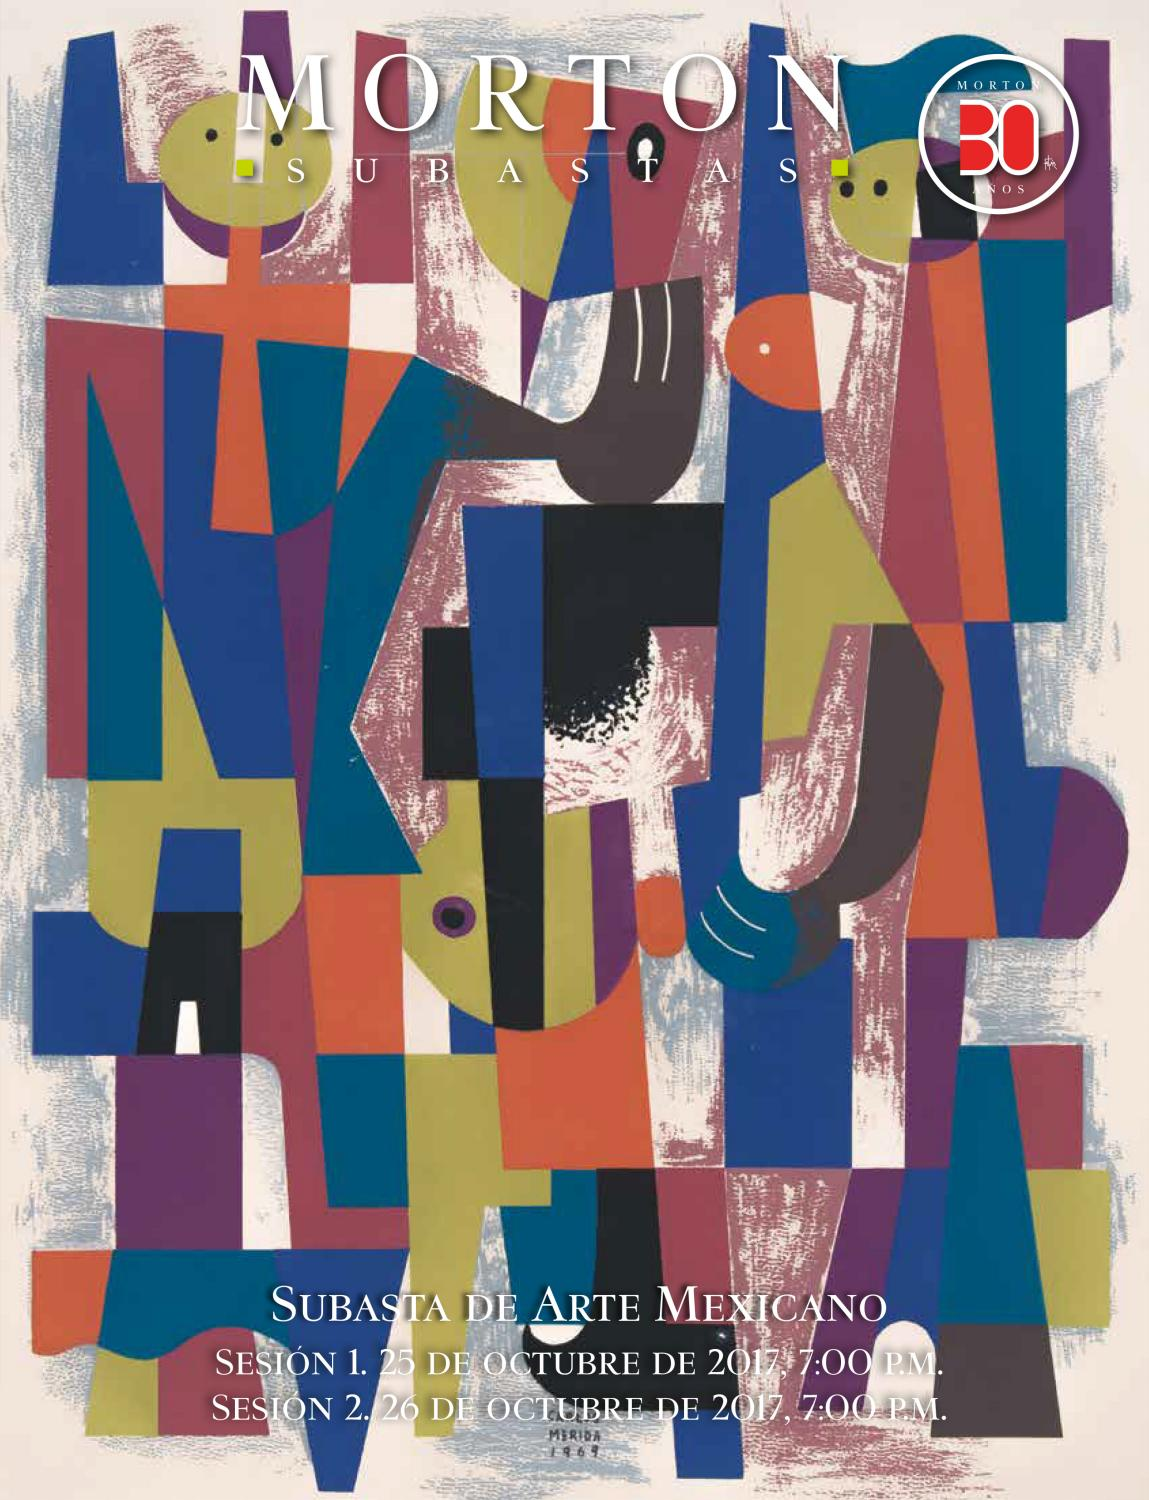 Subasta de Arte Mexicano by Morton Subastas - issuu